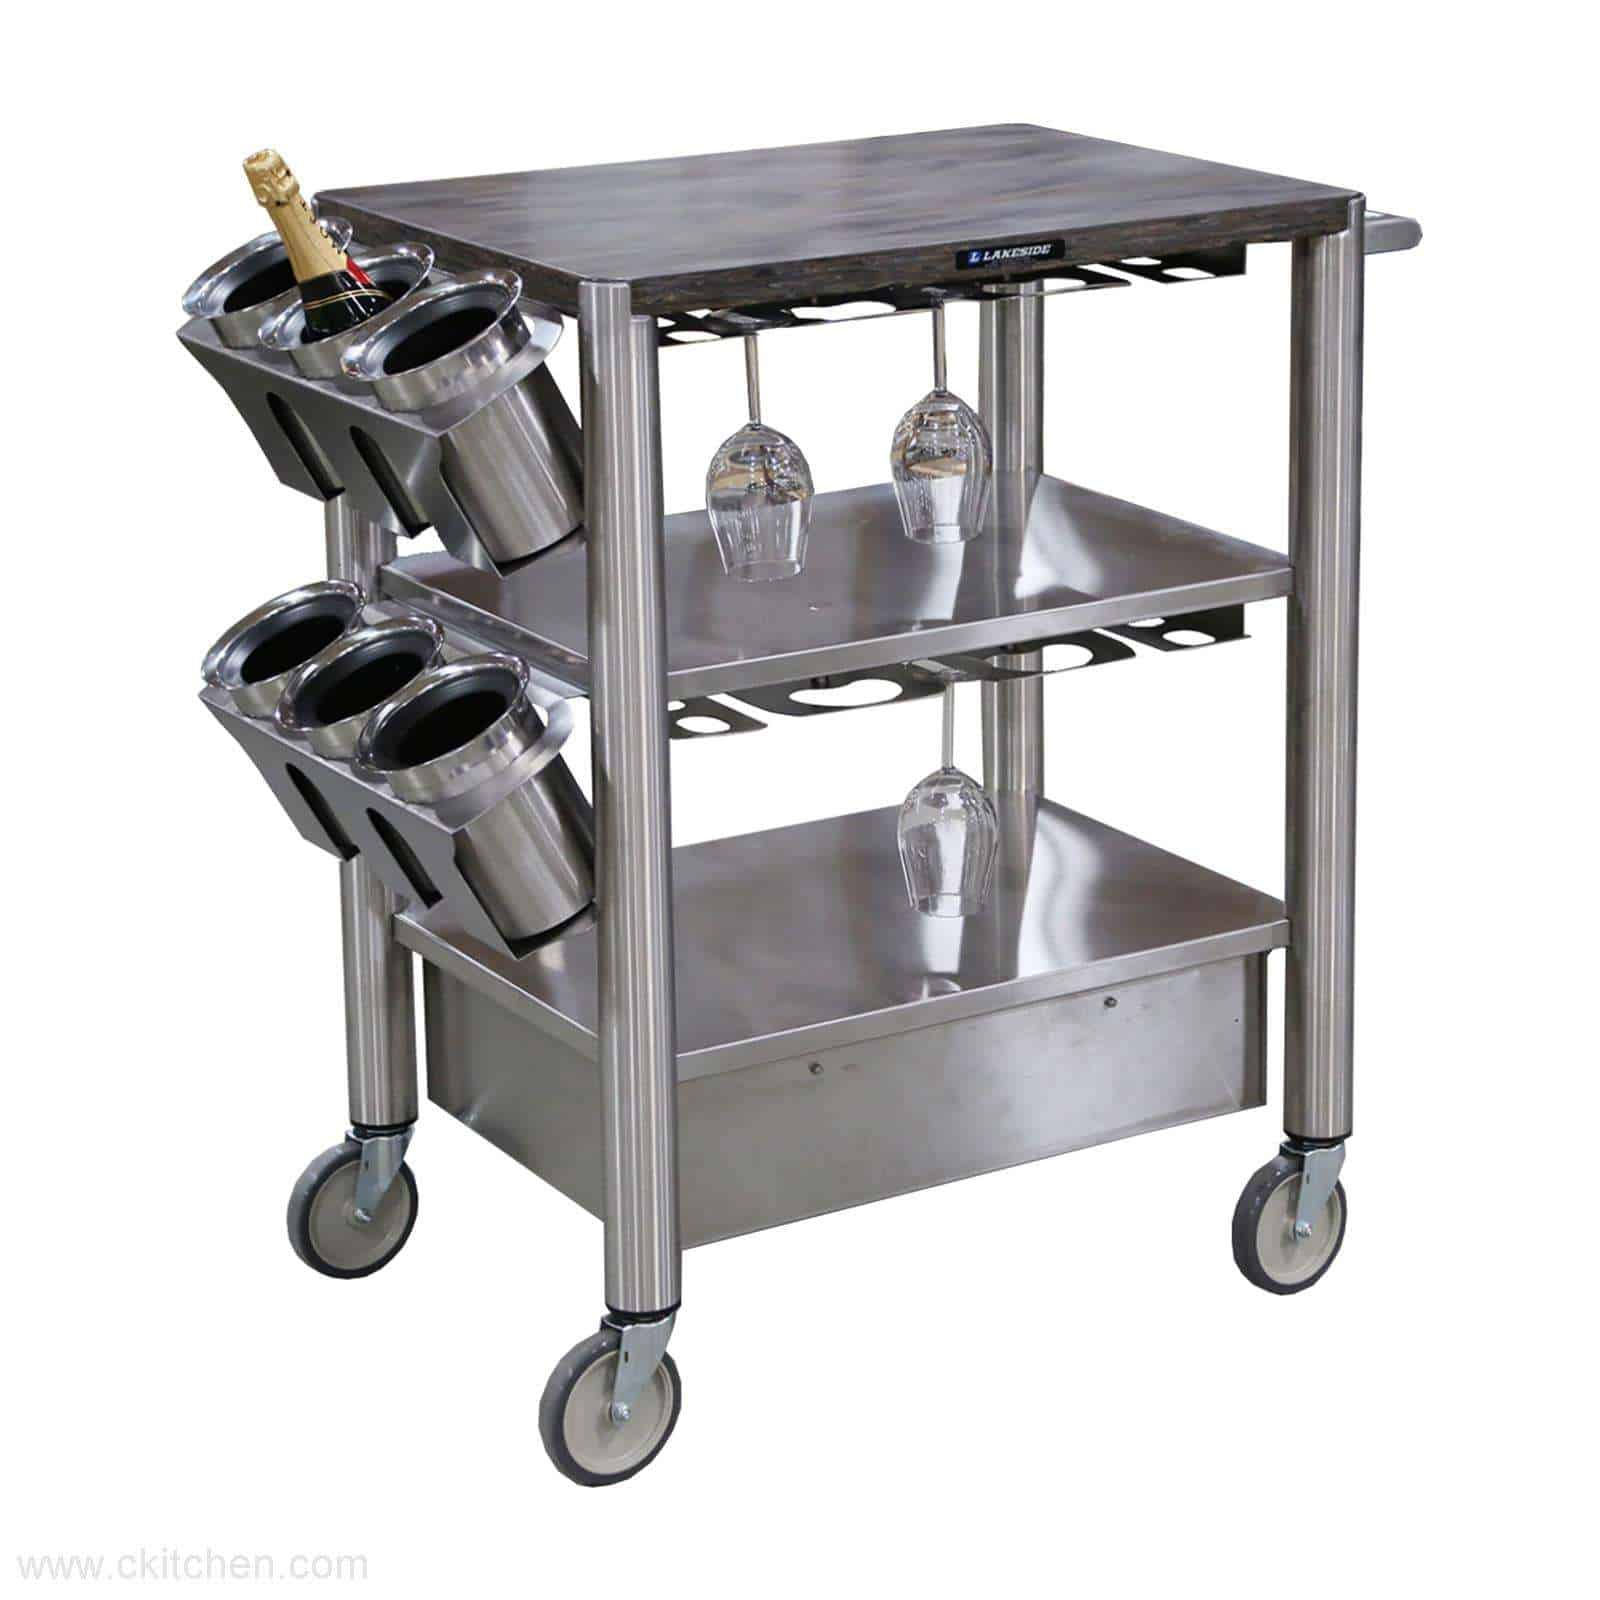 Lakeside Manufacturing 509 Wine Cart Ckitchen Com